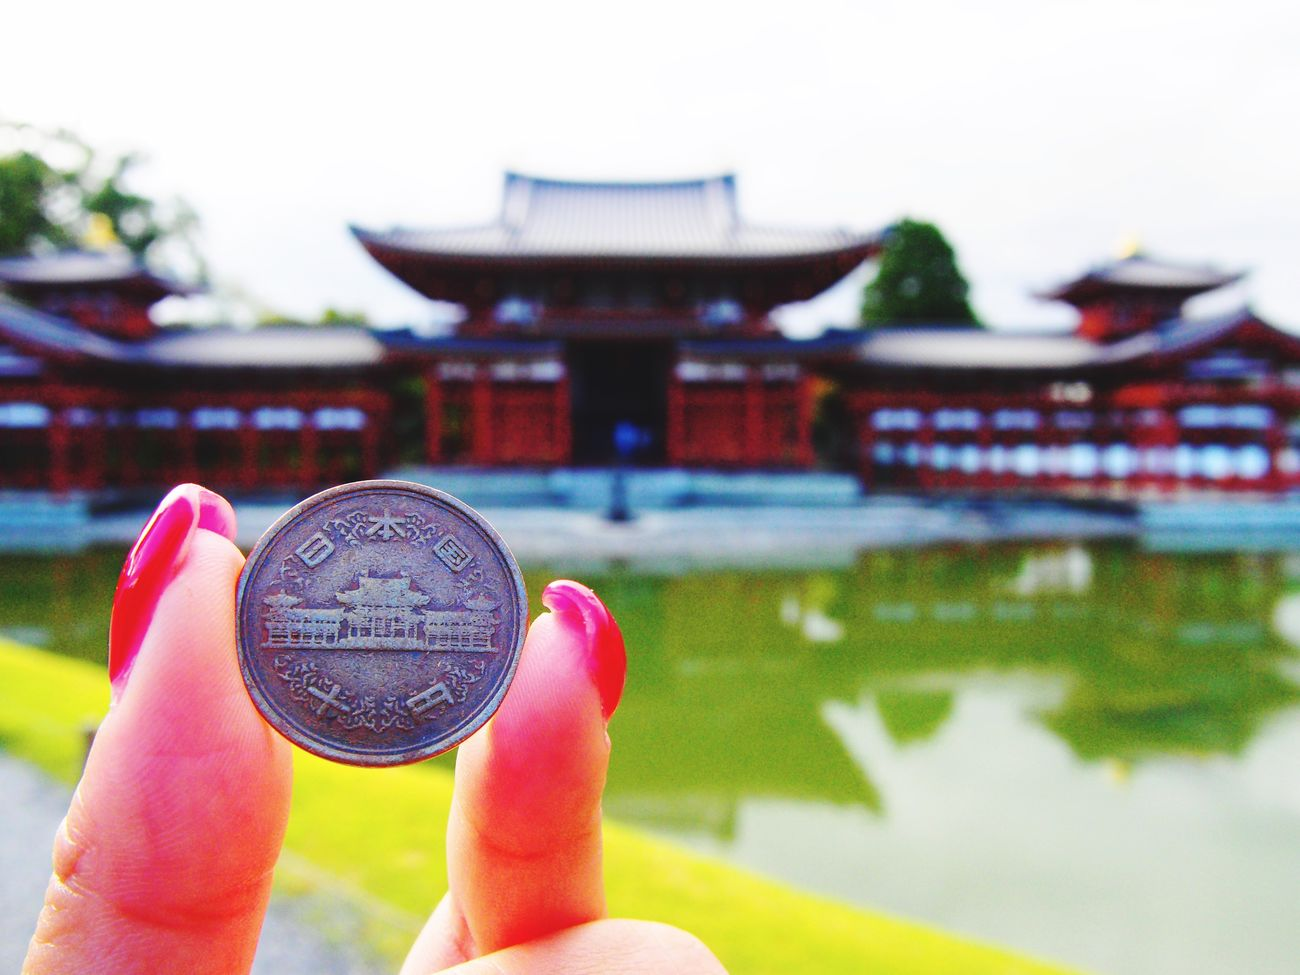 Byodoin Temple Kyoto Japan Culture Tradition Coins Water Yen 10yen Coin 10Yen